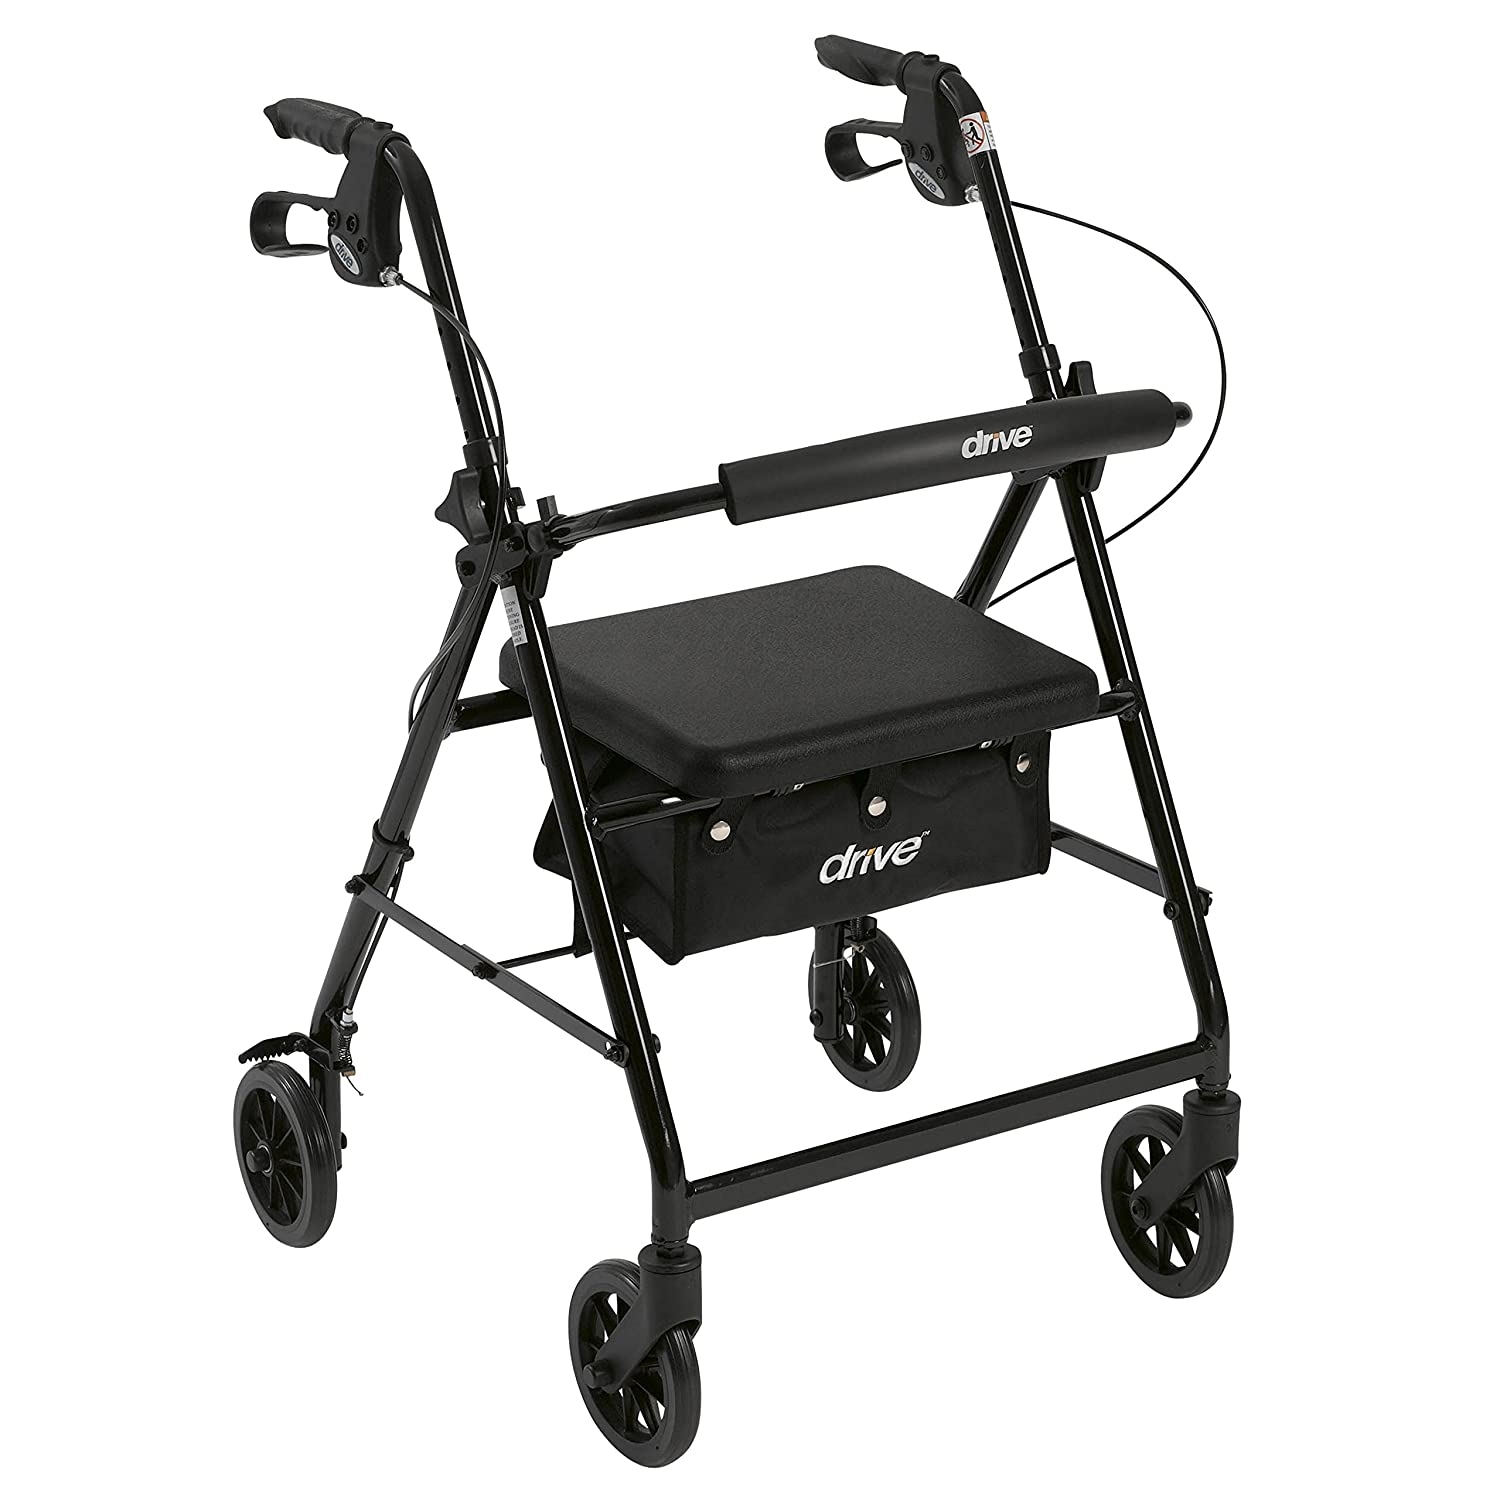 "Drive Medical Aluminum Rollator Walker Fold Up And Removable Back Support, Padded Seat, 6"" Wheels, Black by Drive Medical"